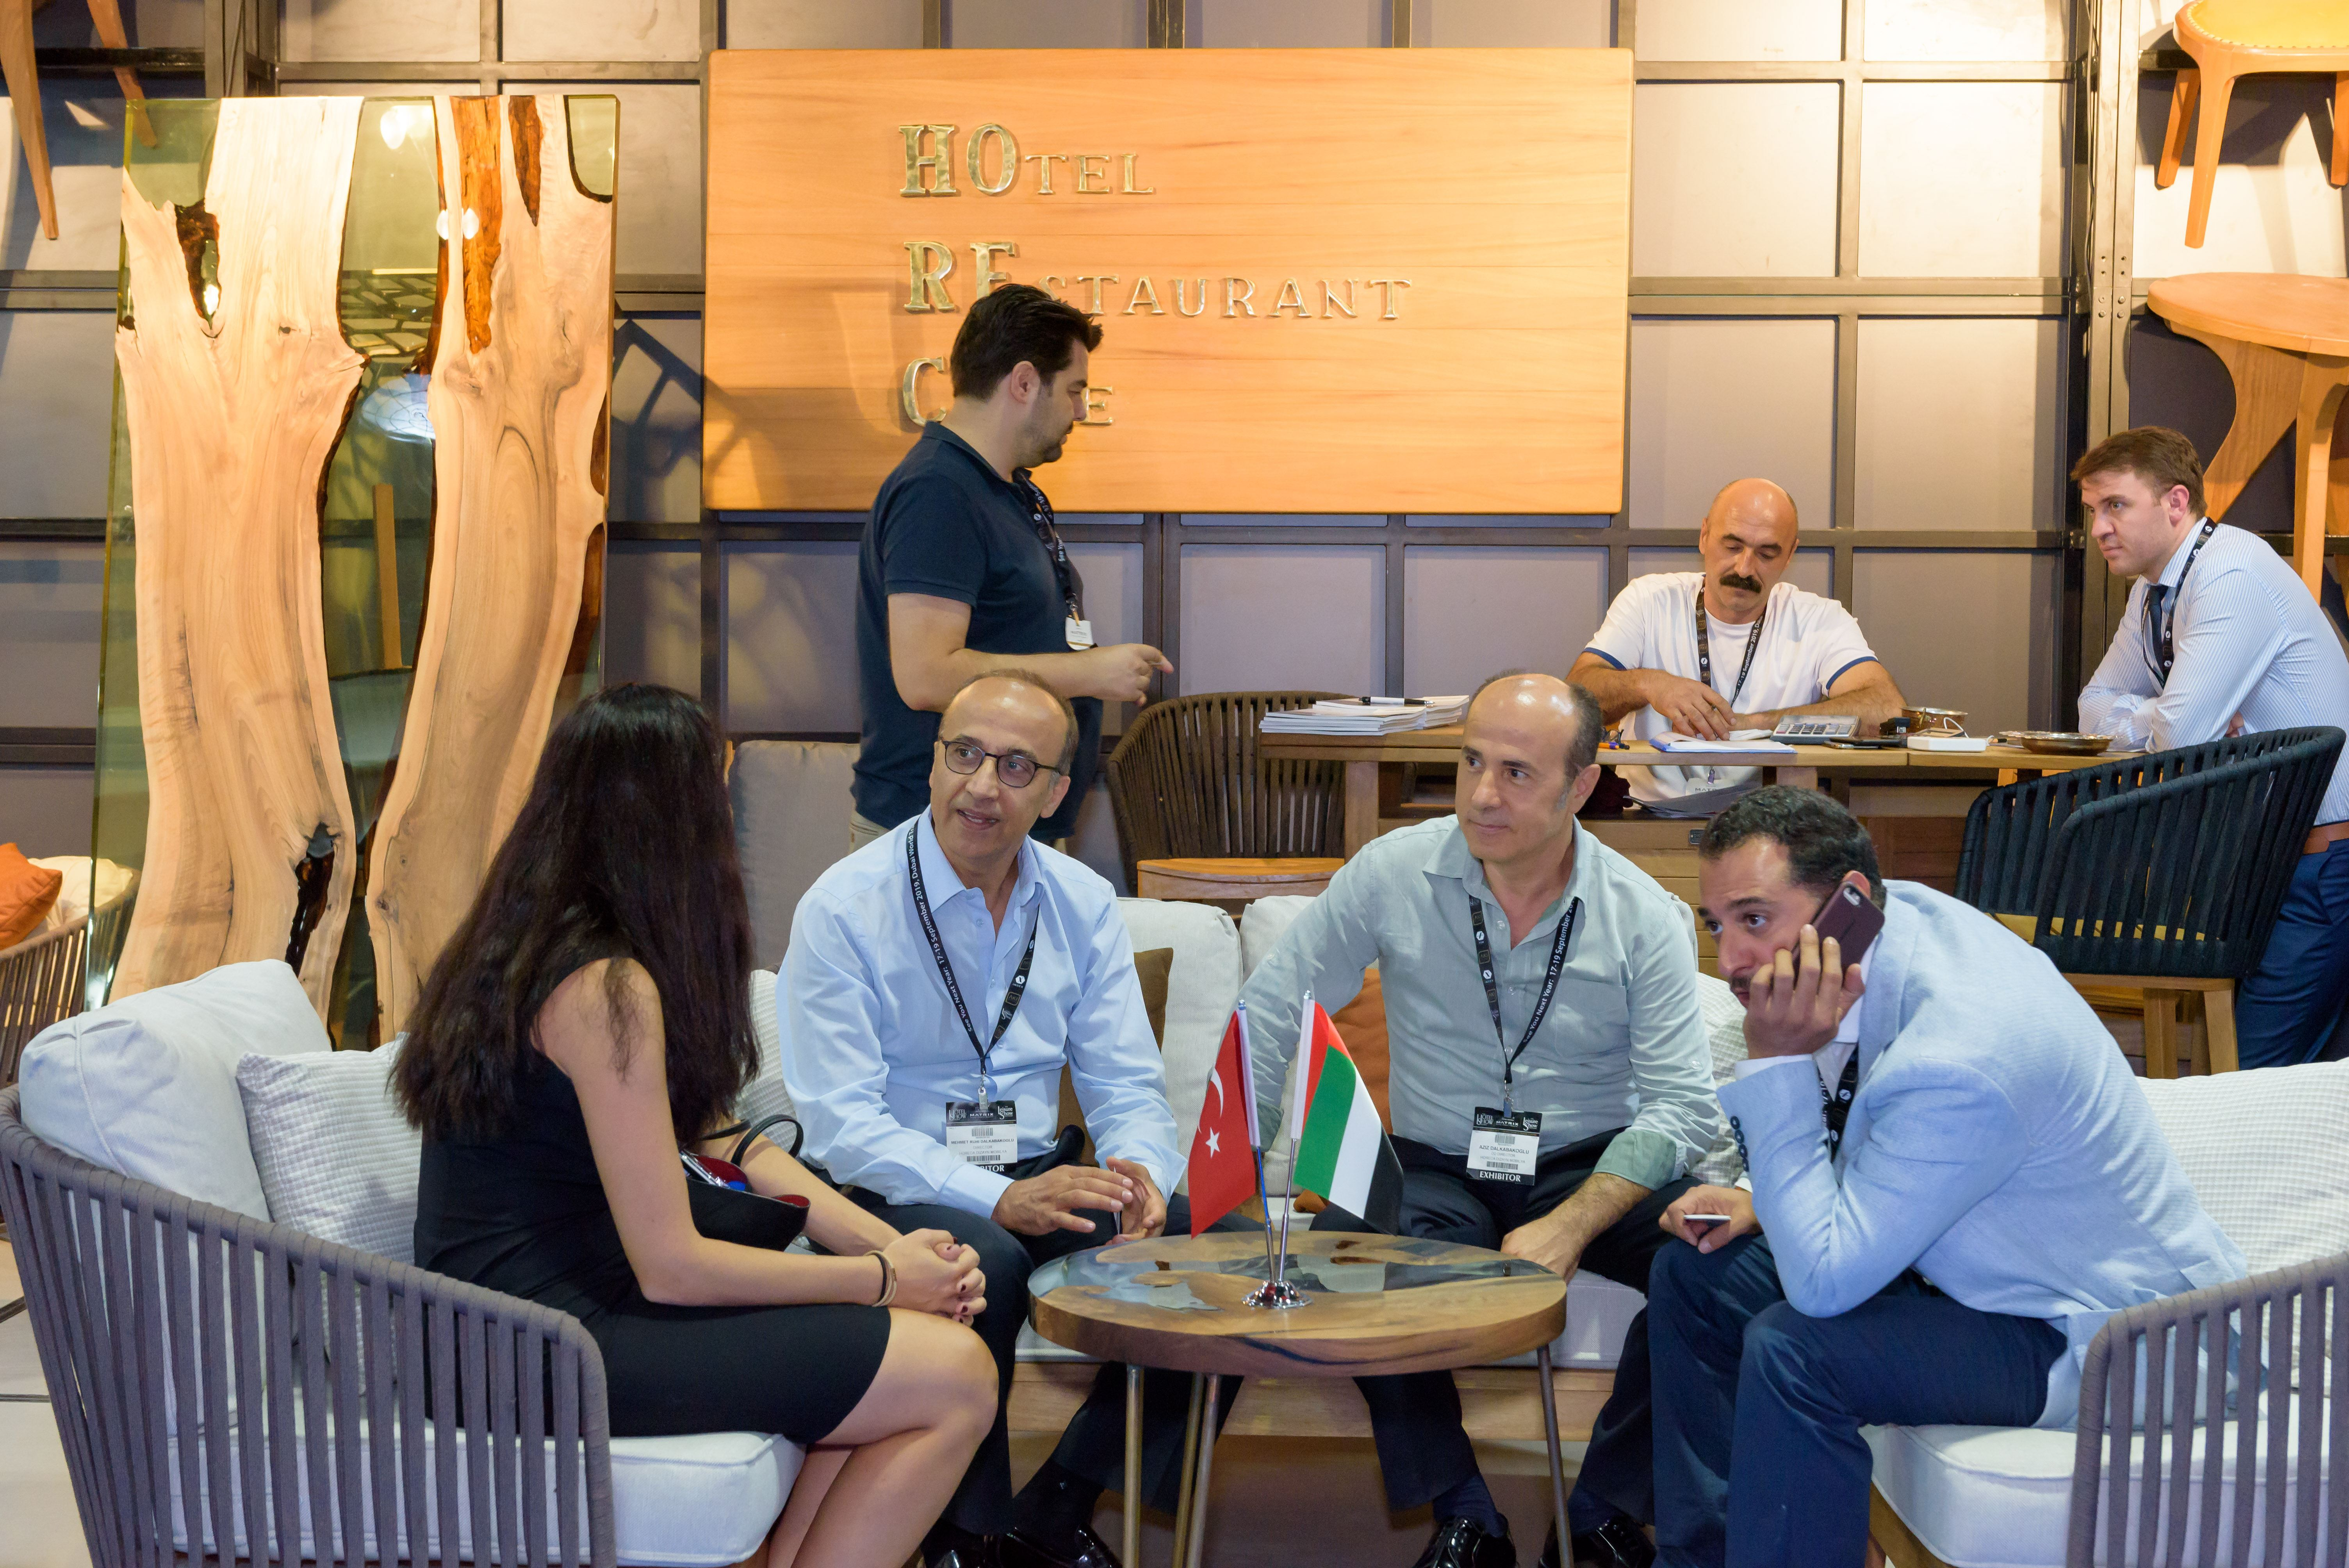 20th edition of Hotel Show Dubai prepares to raise curtains as GCC hospitality market hits $32.5 billion